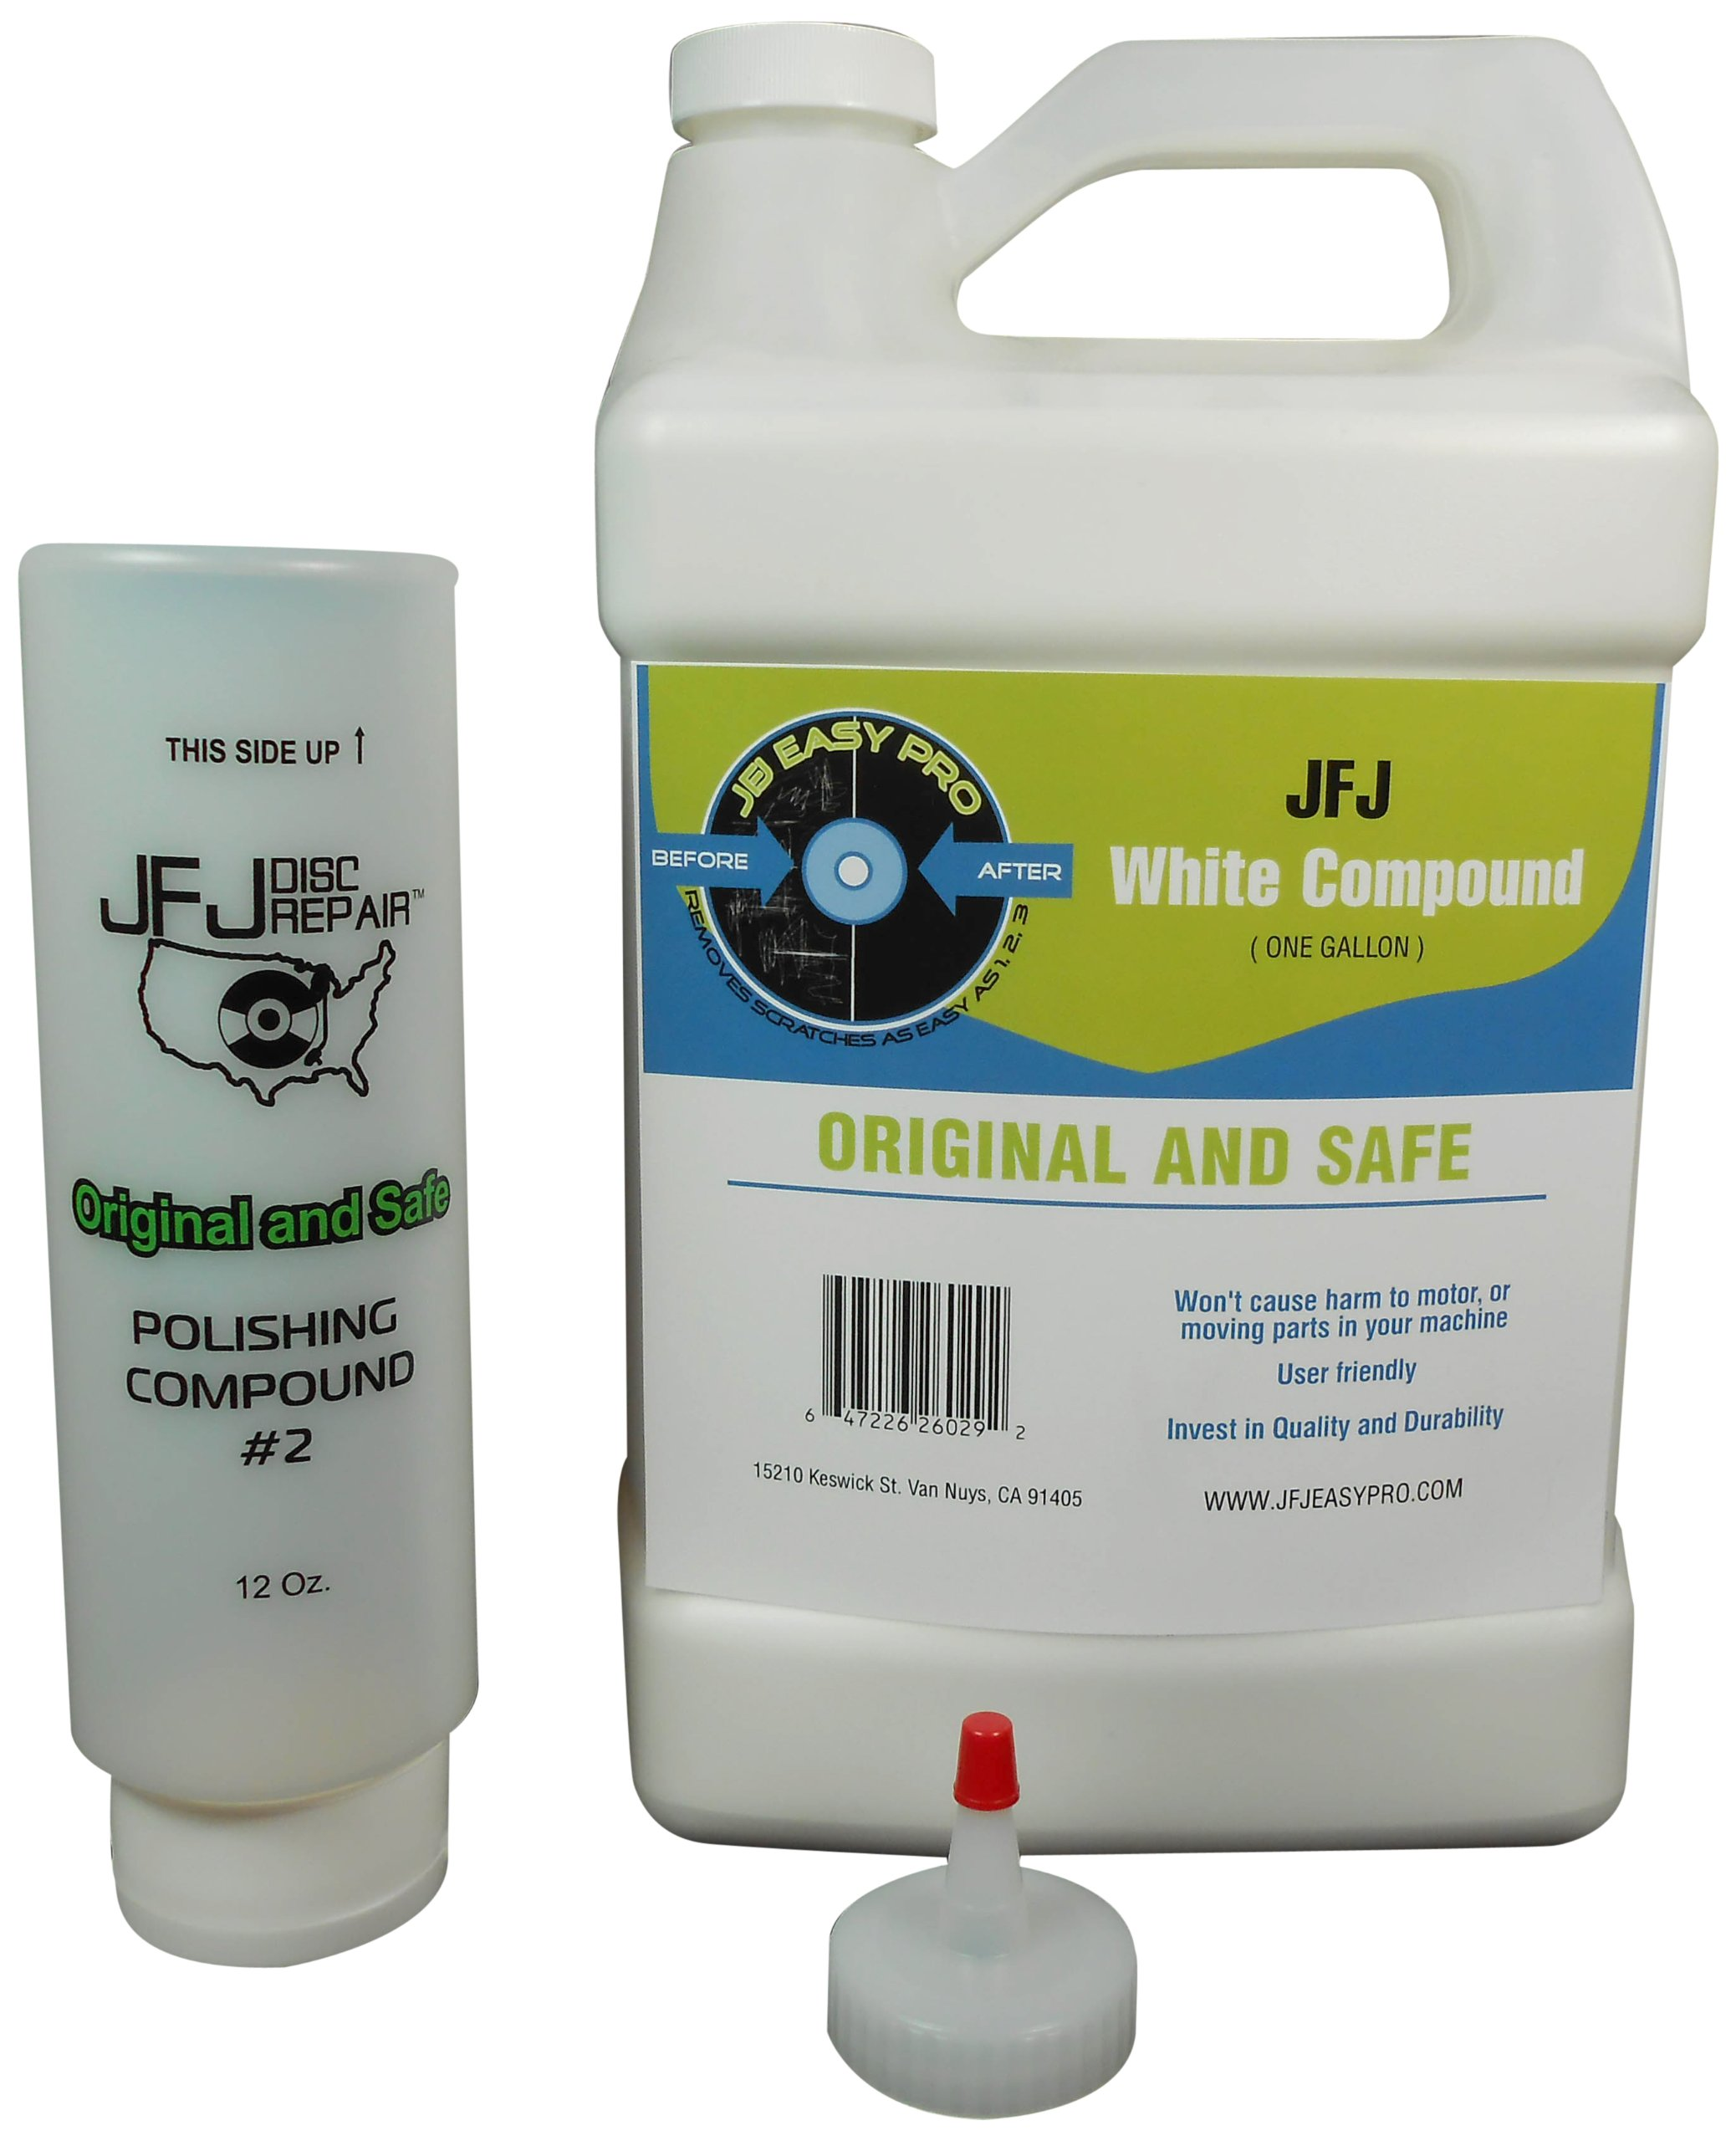 JFJ Disc Repair JFJPOL2G Polish Compound #2